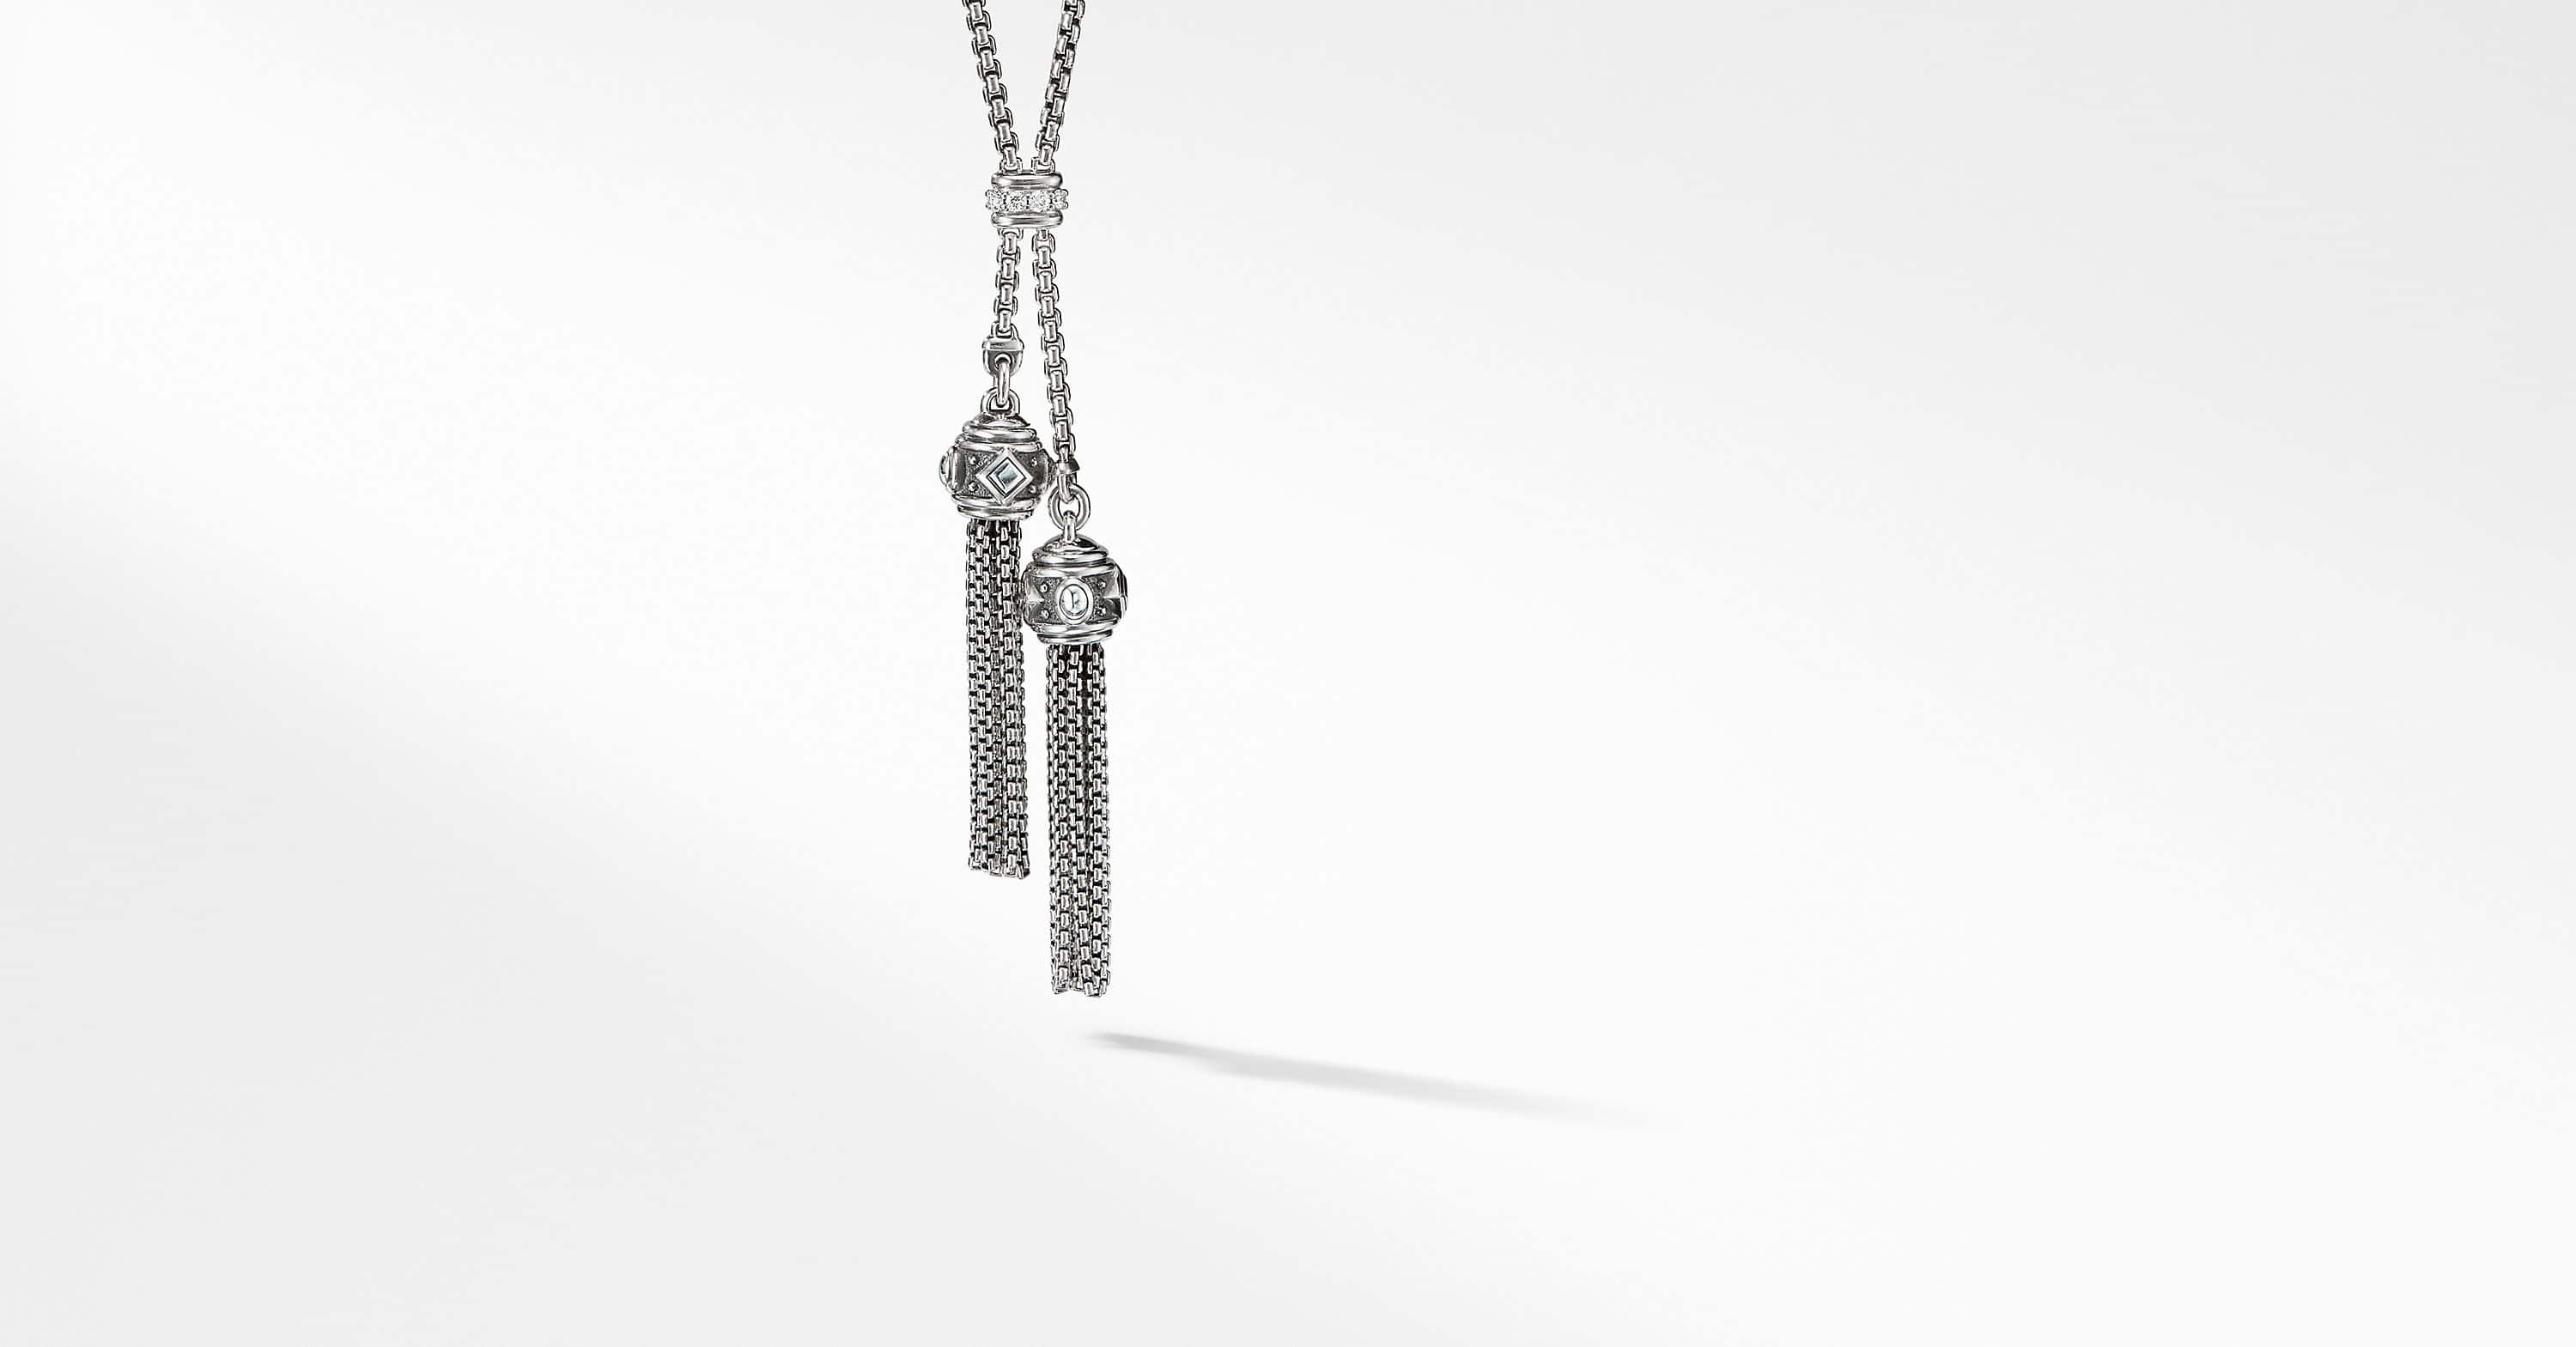 Renaissance Petite Tassel Necklace with Diamonds